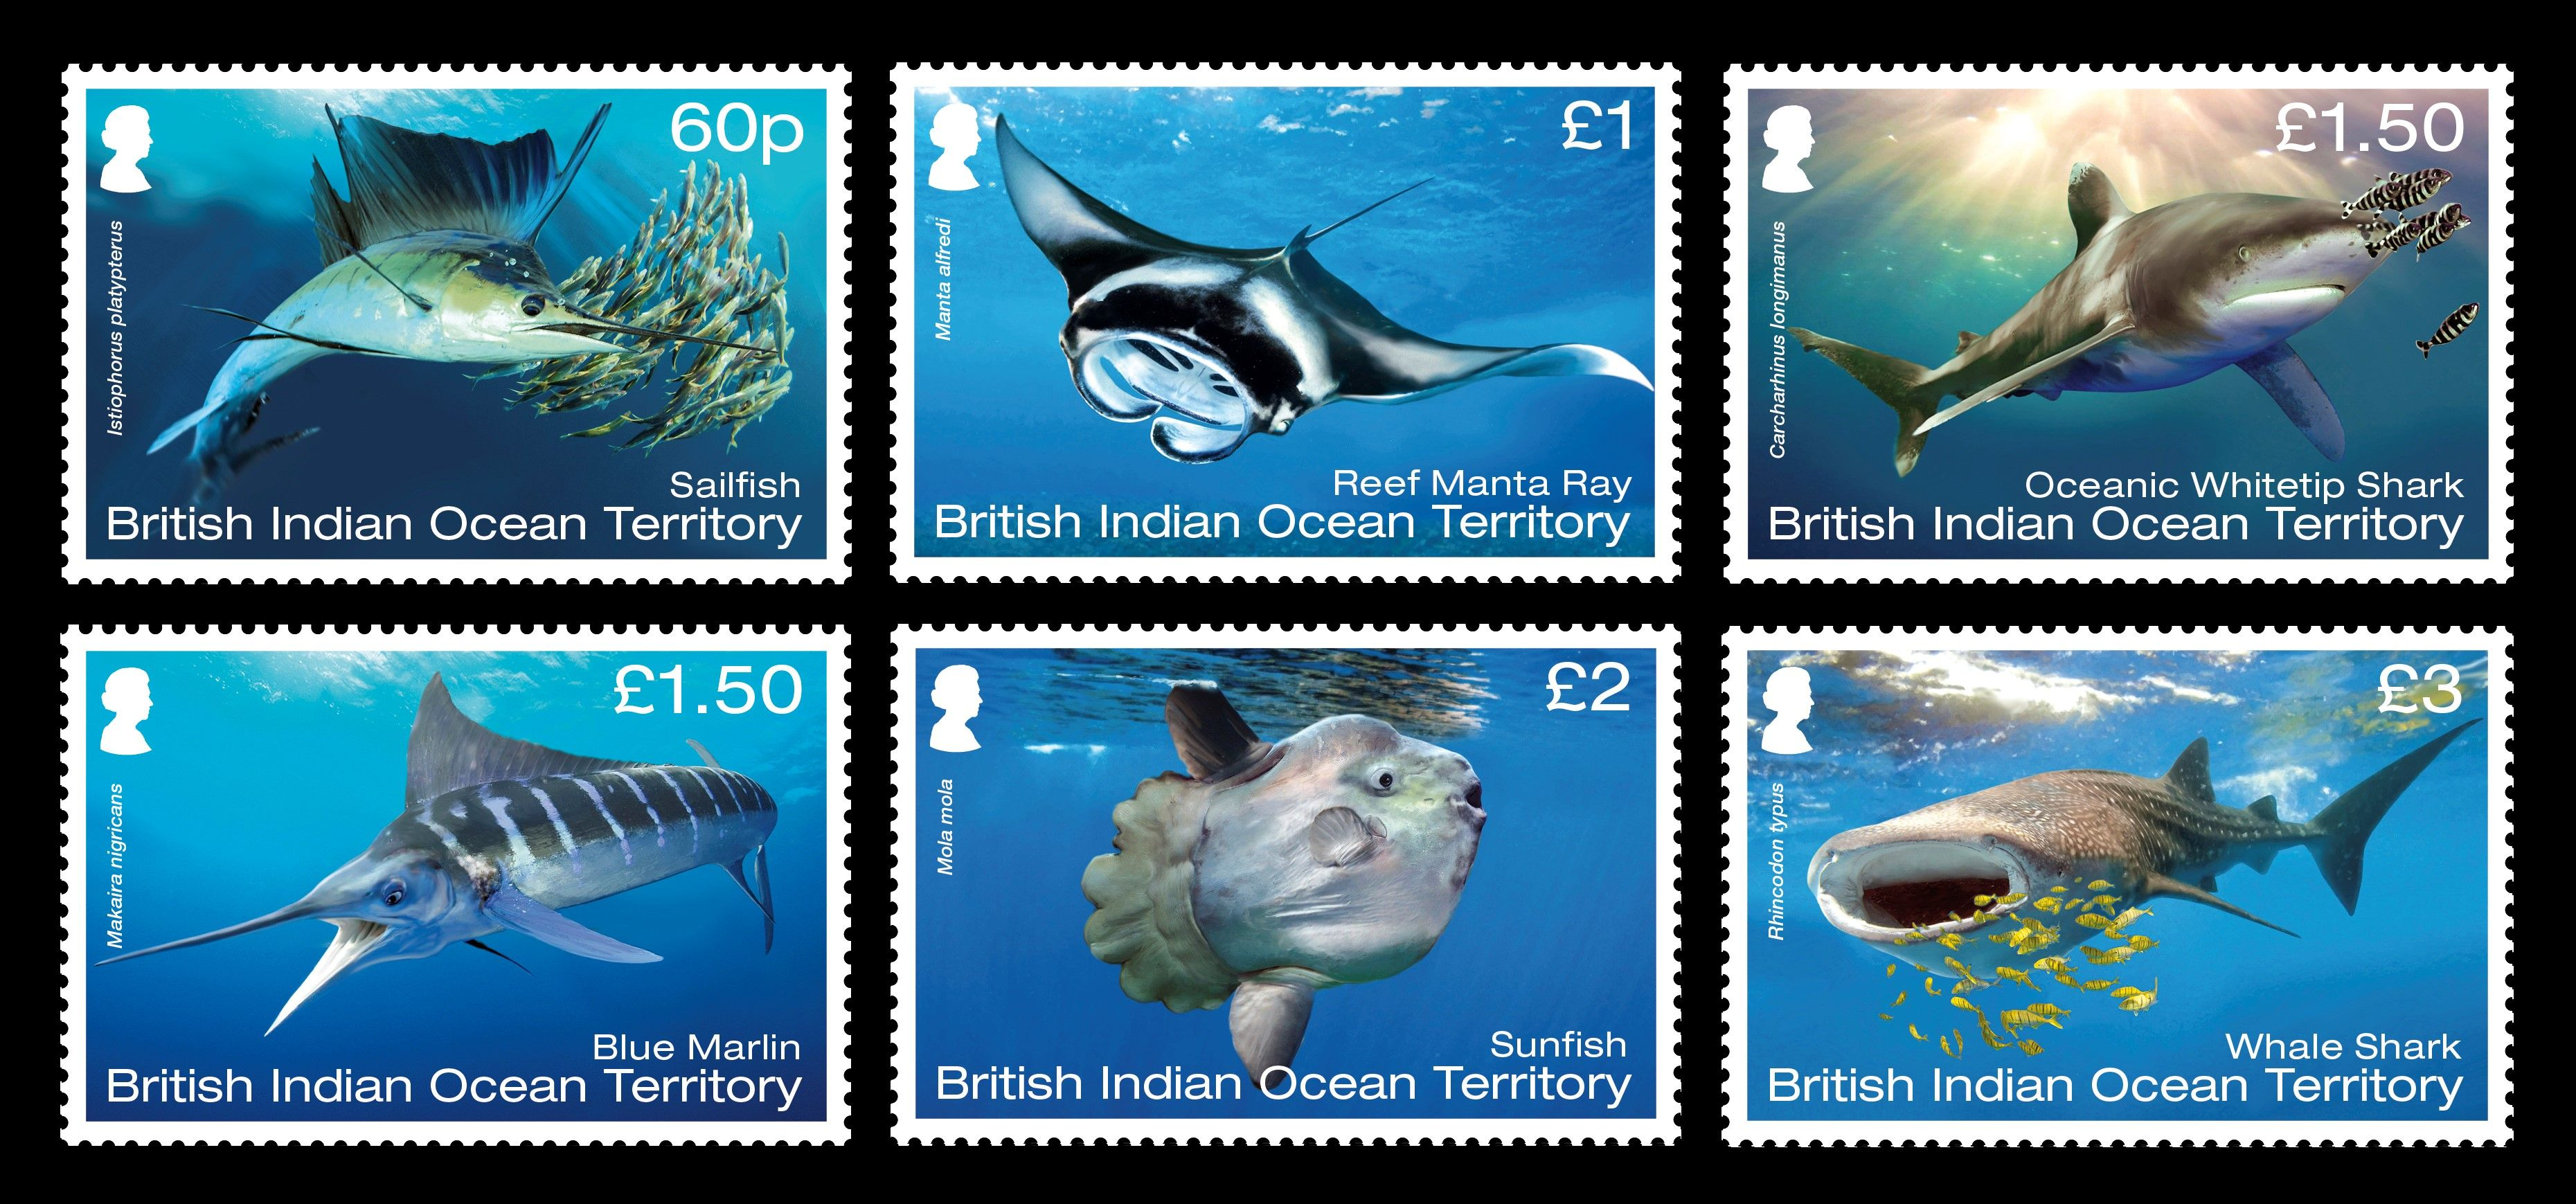 BIOT Megafauna Stamp Issue 08.06.17 Published 26 May